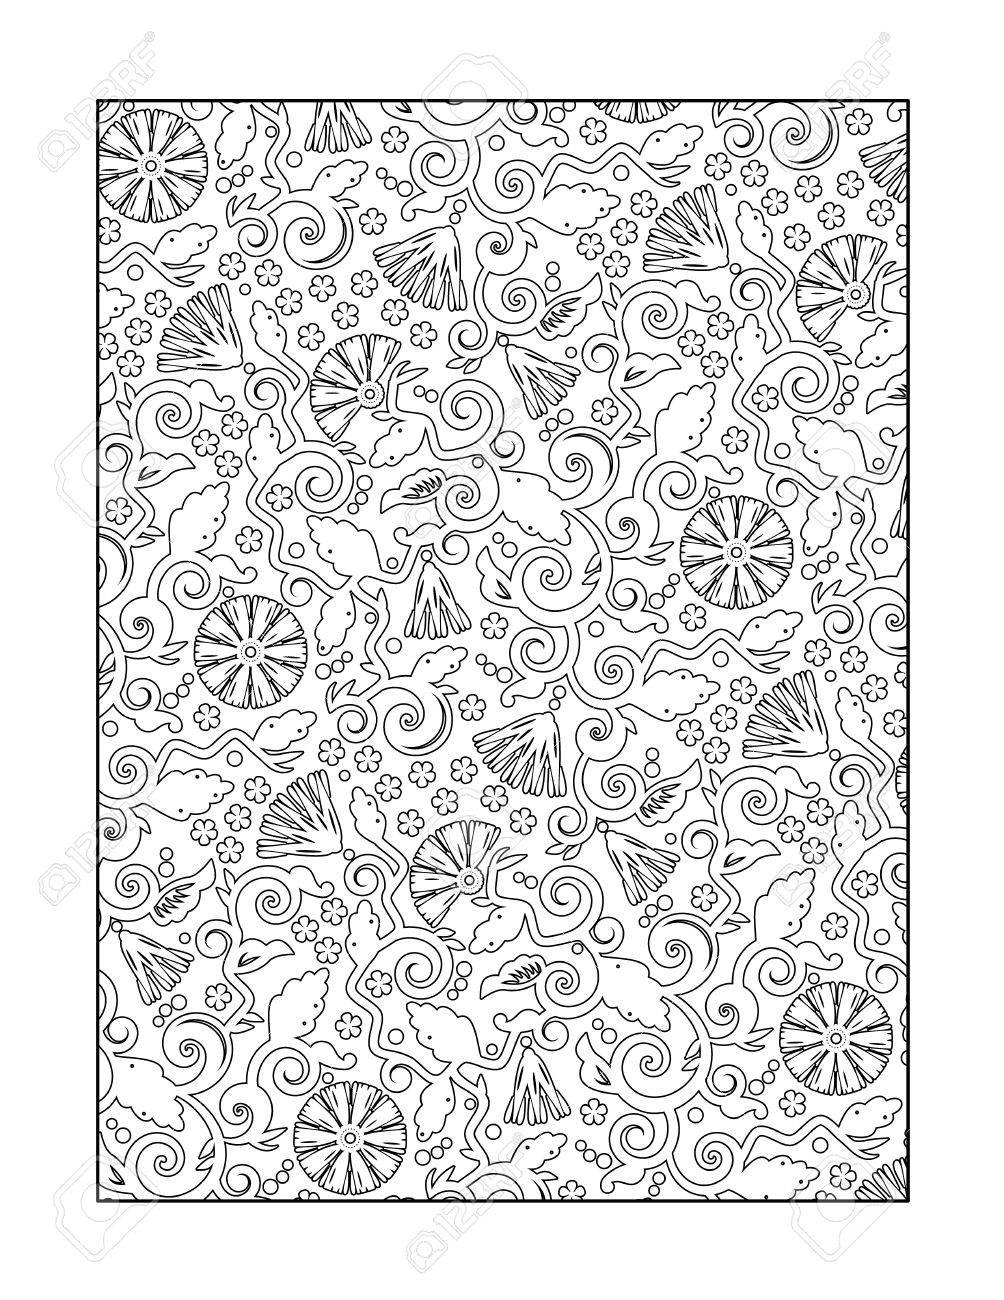 Free whimsical coloring pages for adults - Coloring Page For Adults Children Ok Too With Whimsical Swirly Floral Pattern Or Monochrome